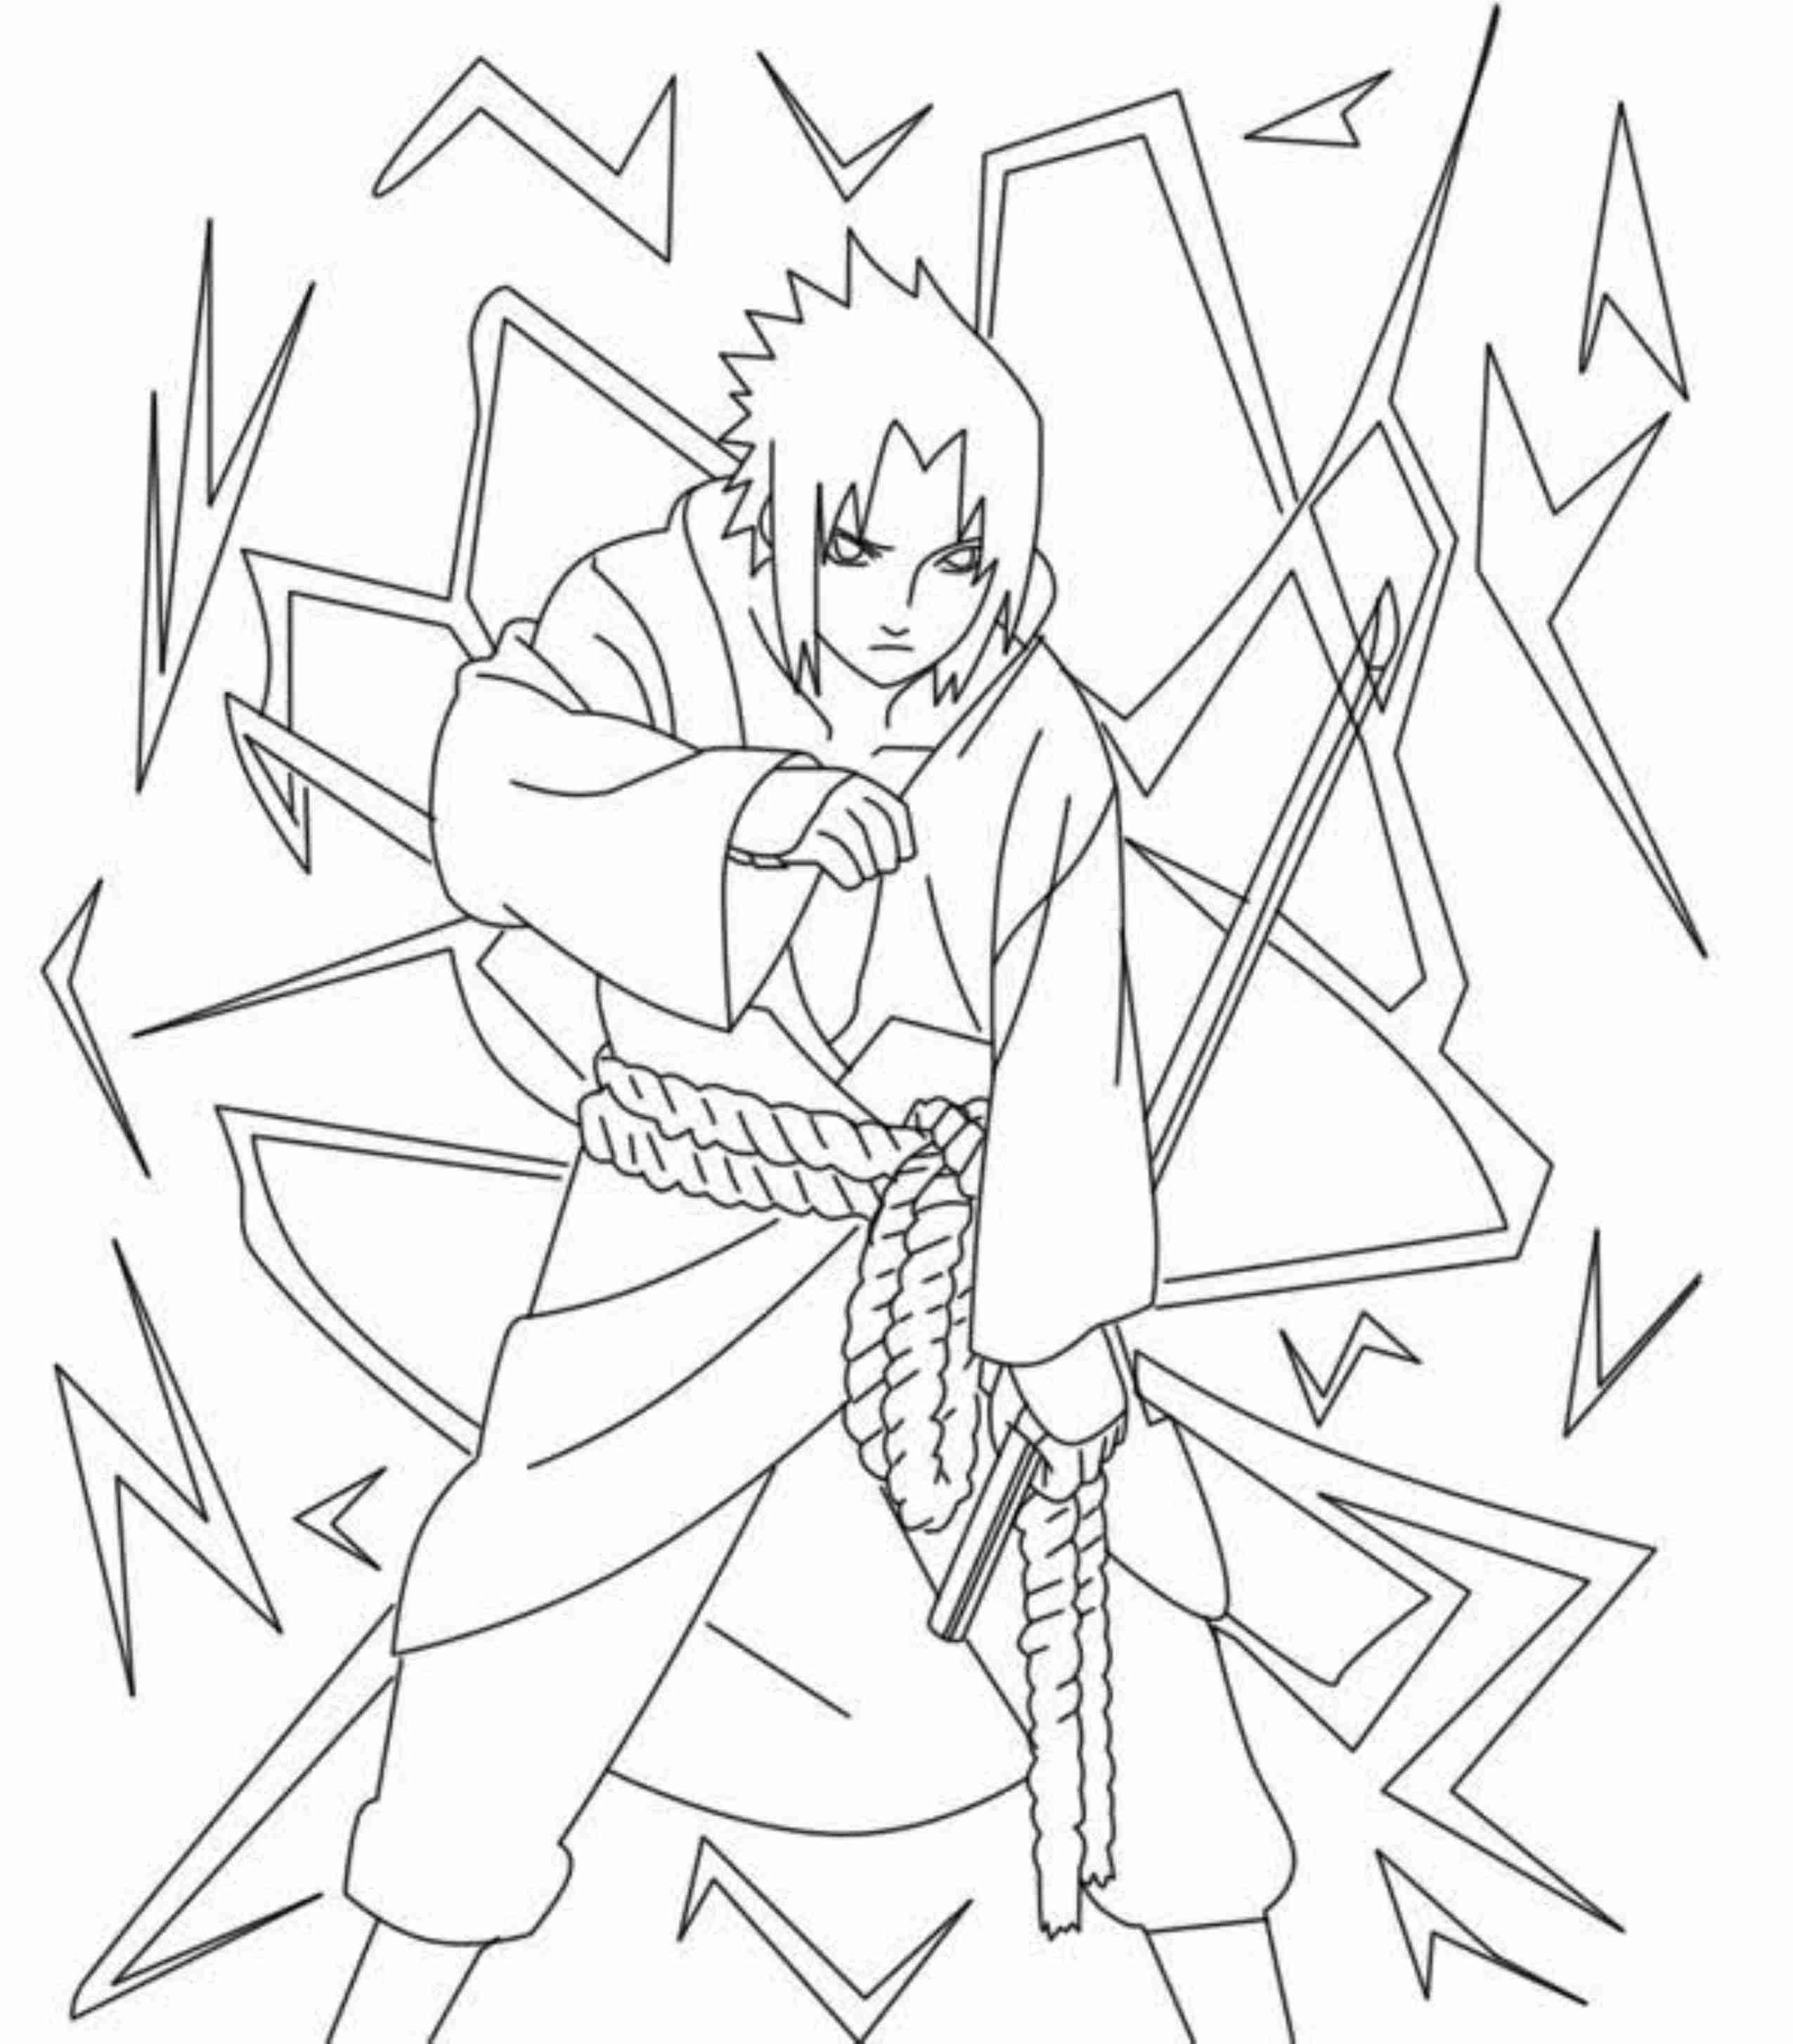 Anime Naruto Coloring Pages Printable Naruto Coloring Pages To Get Your Kids Occupied Best